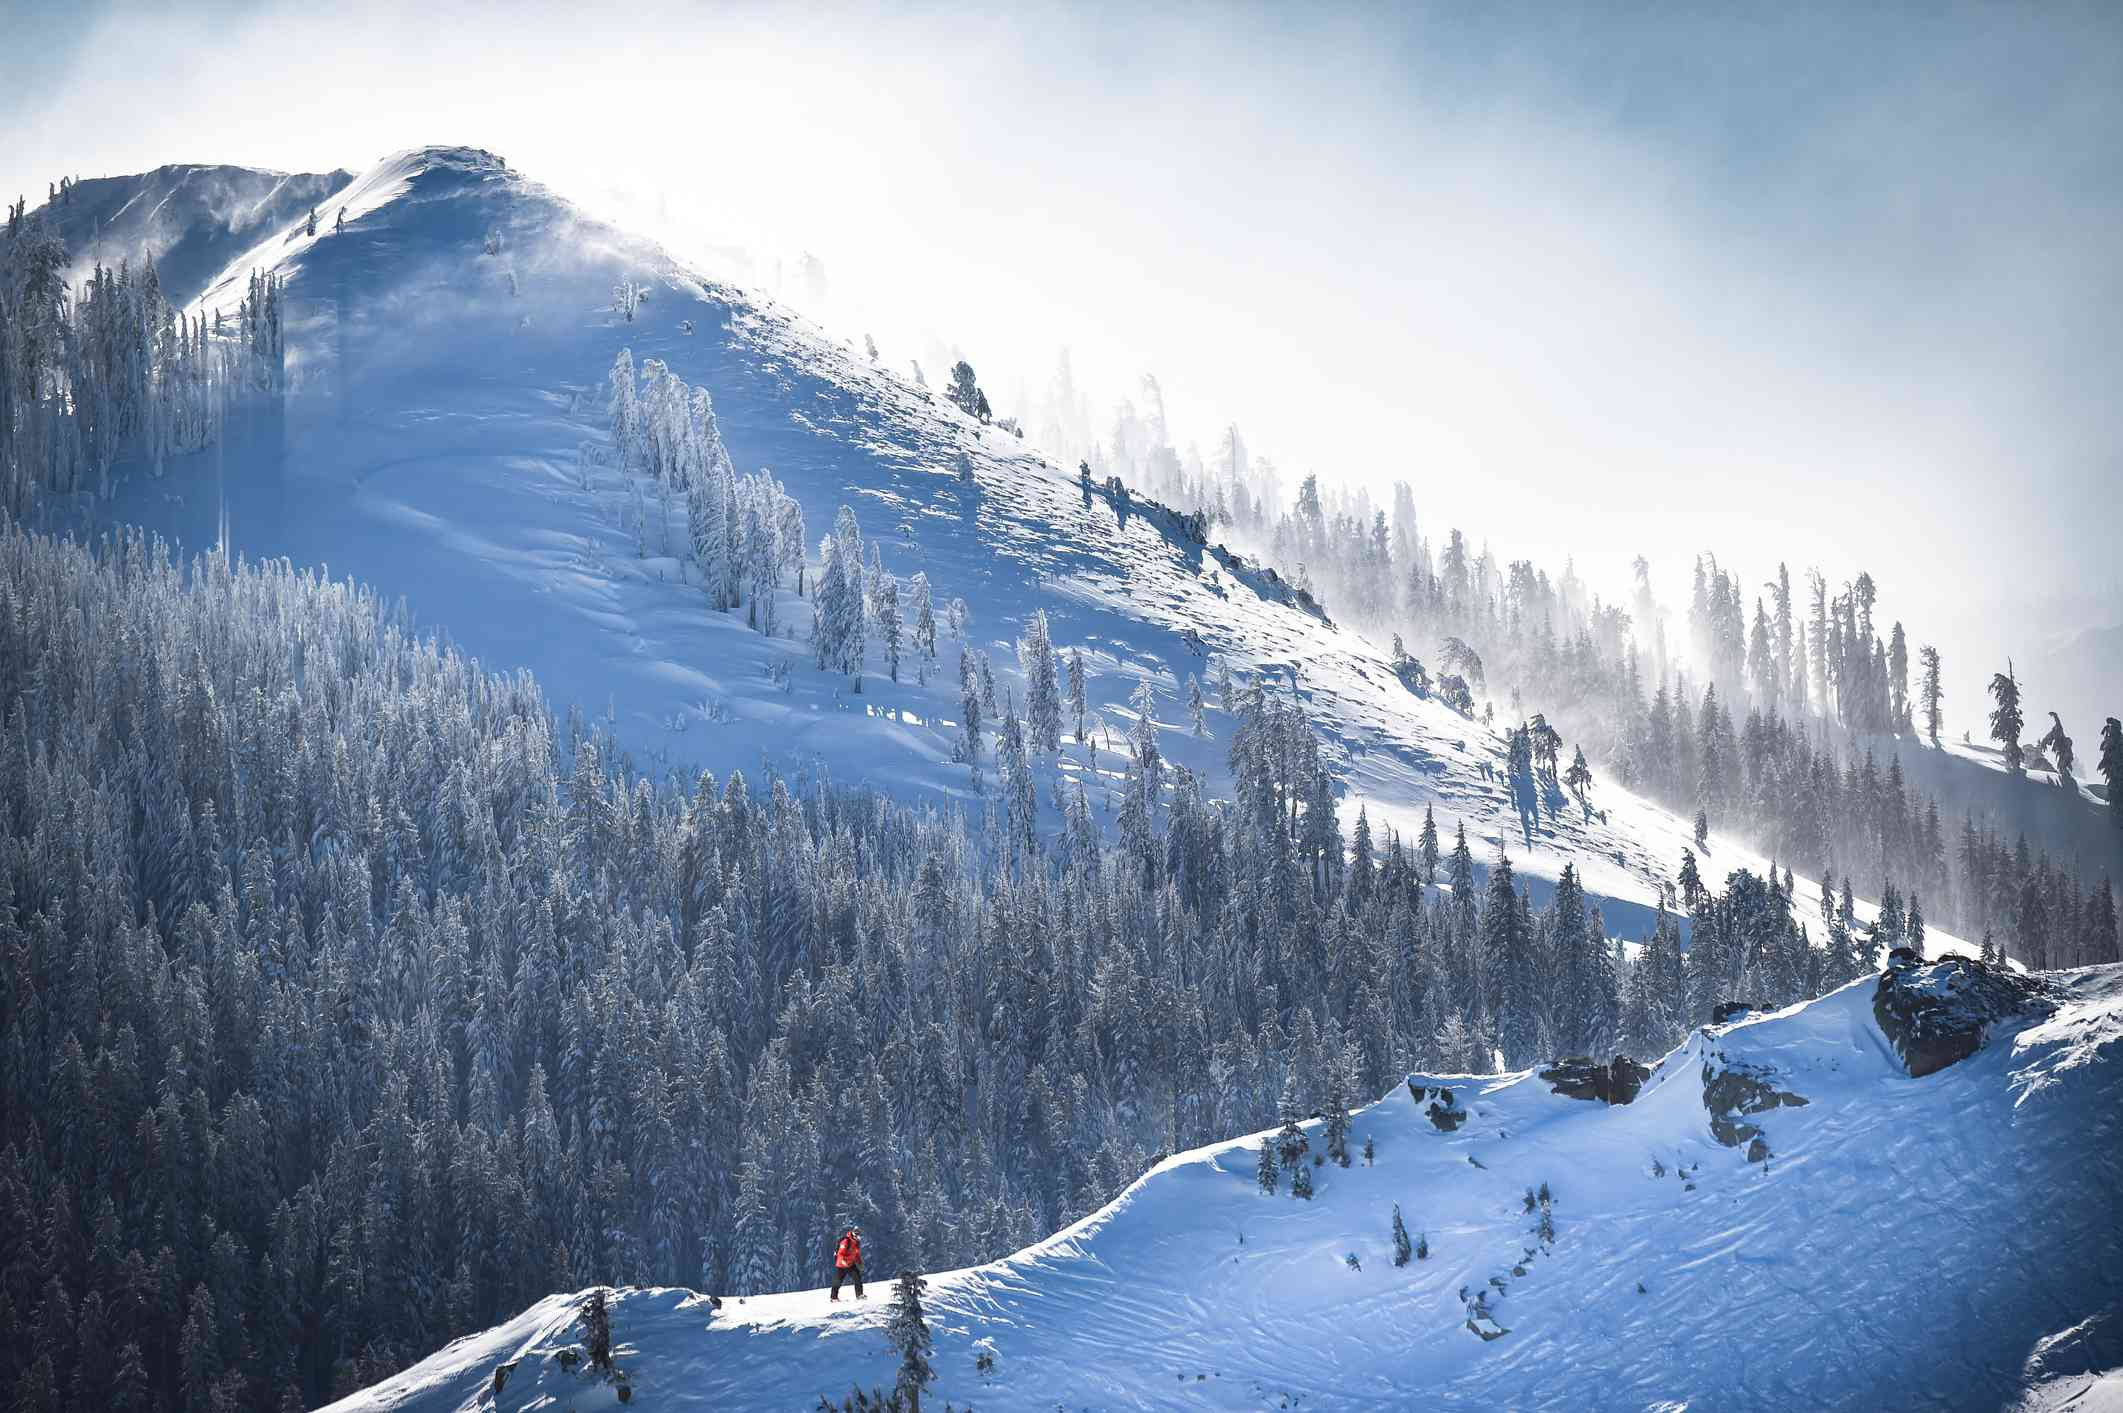 Rescue worker traverses a snowy edge of a mountain. Digital composite.